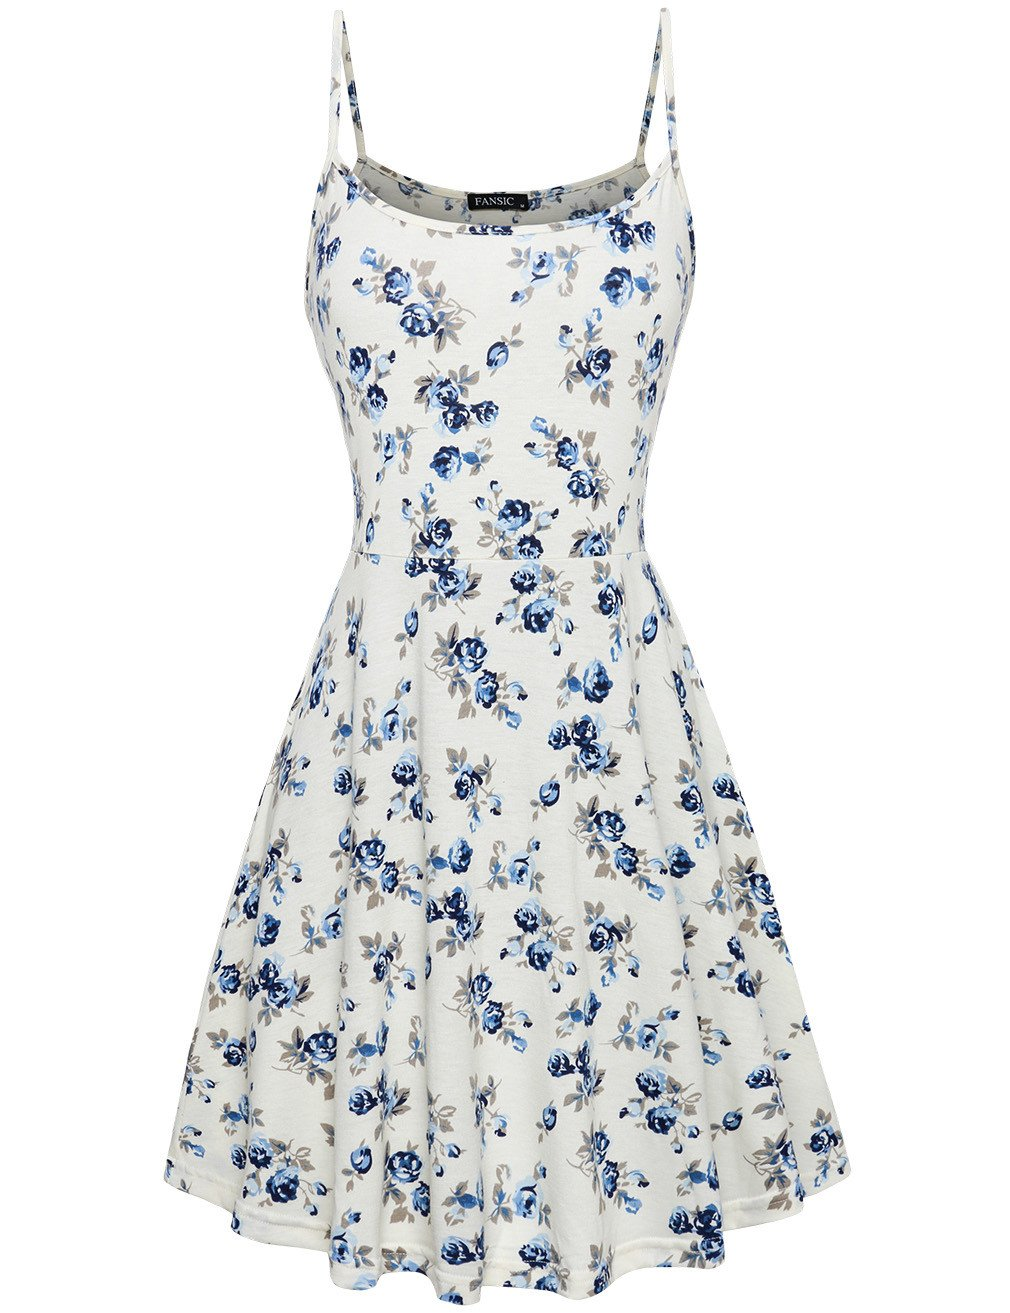 Summer Sleeveless Floral Print Dress Stretch Beach Mini Spaghetti Strap Dressing white and blue M